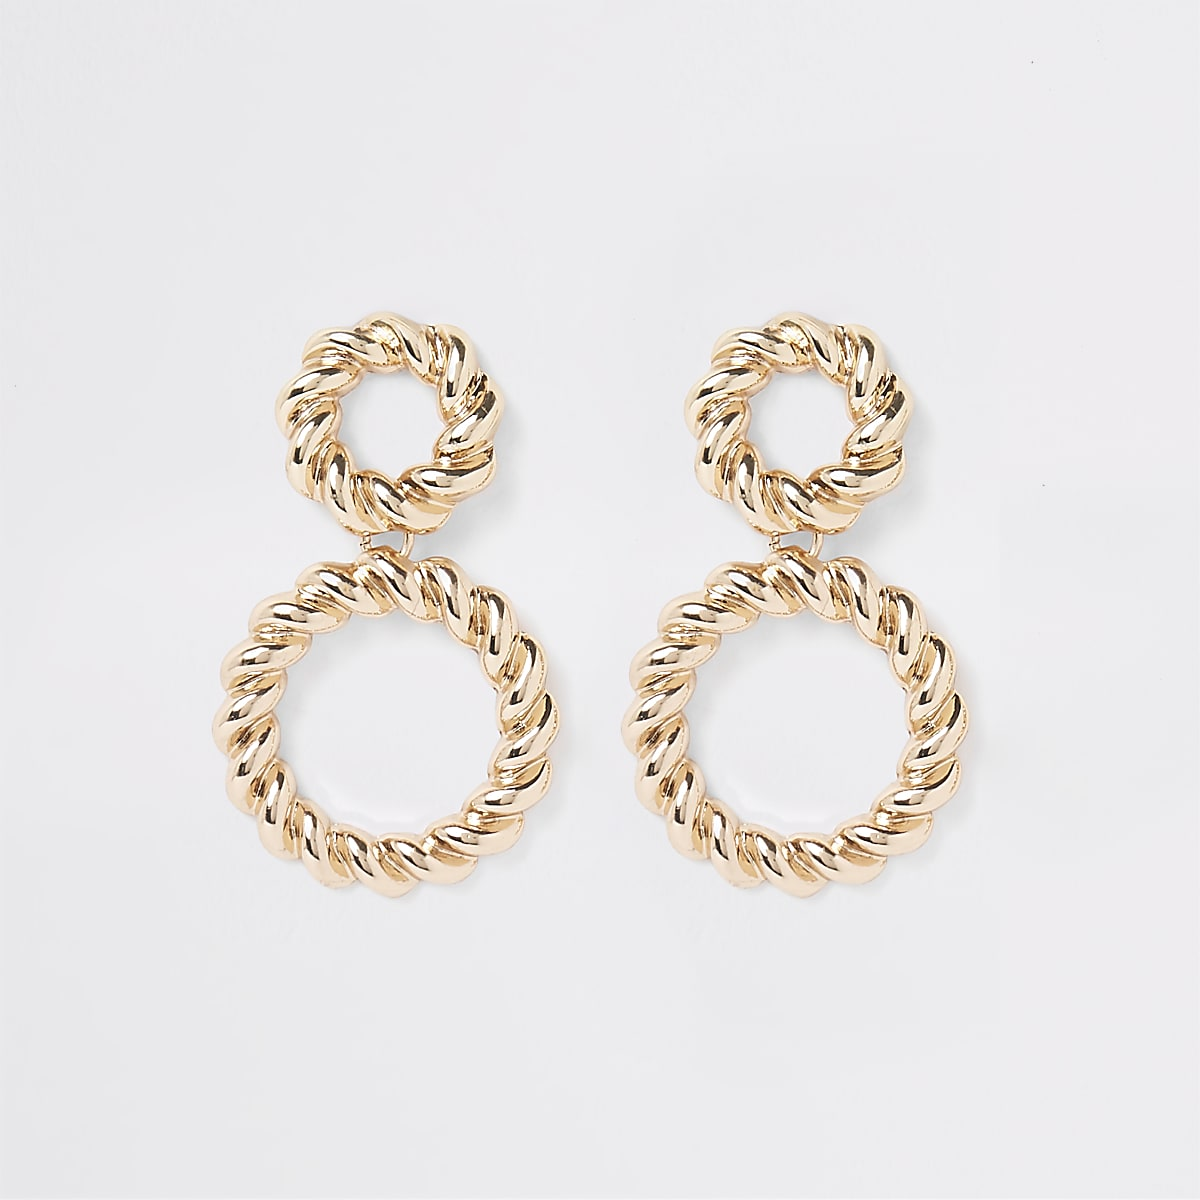 Gold colour twisted ring drop earrings